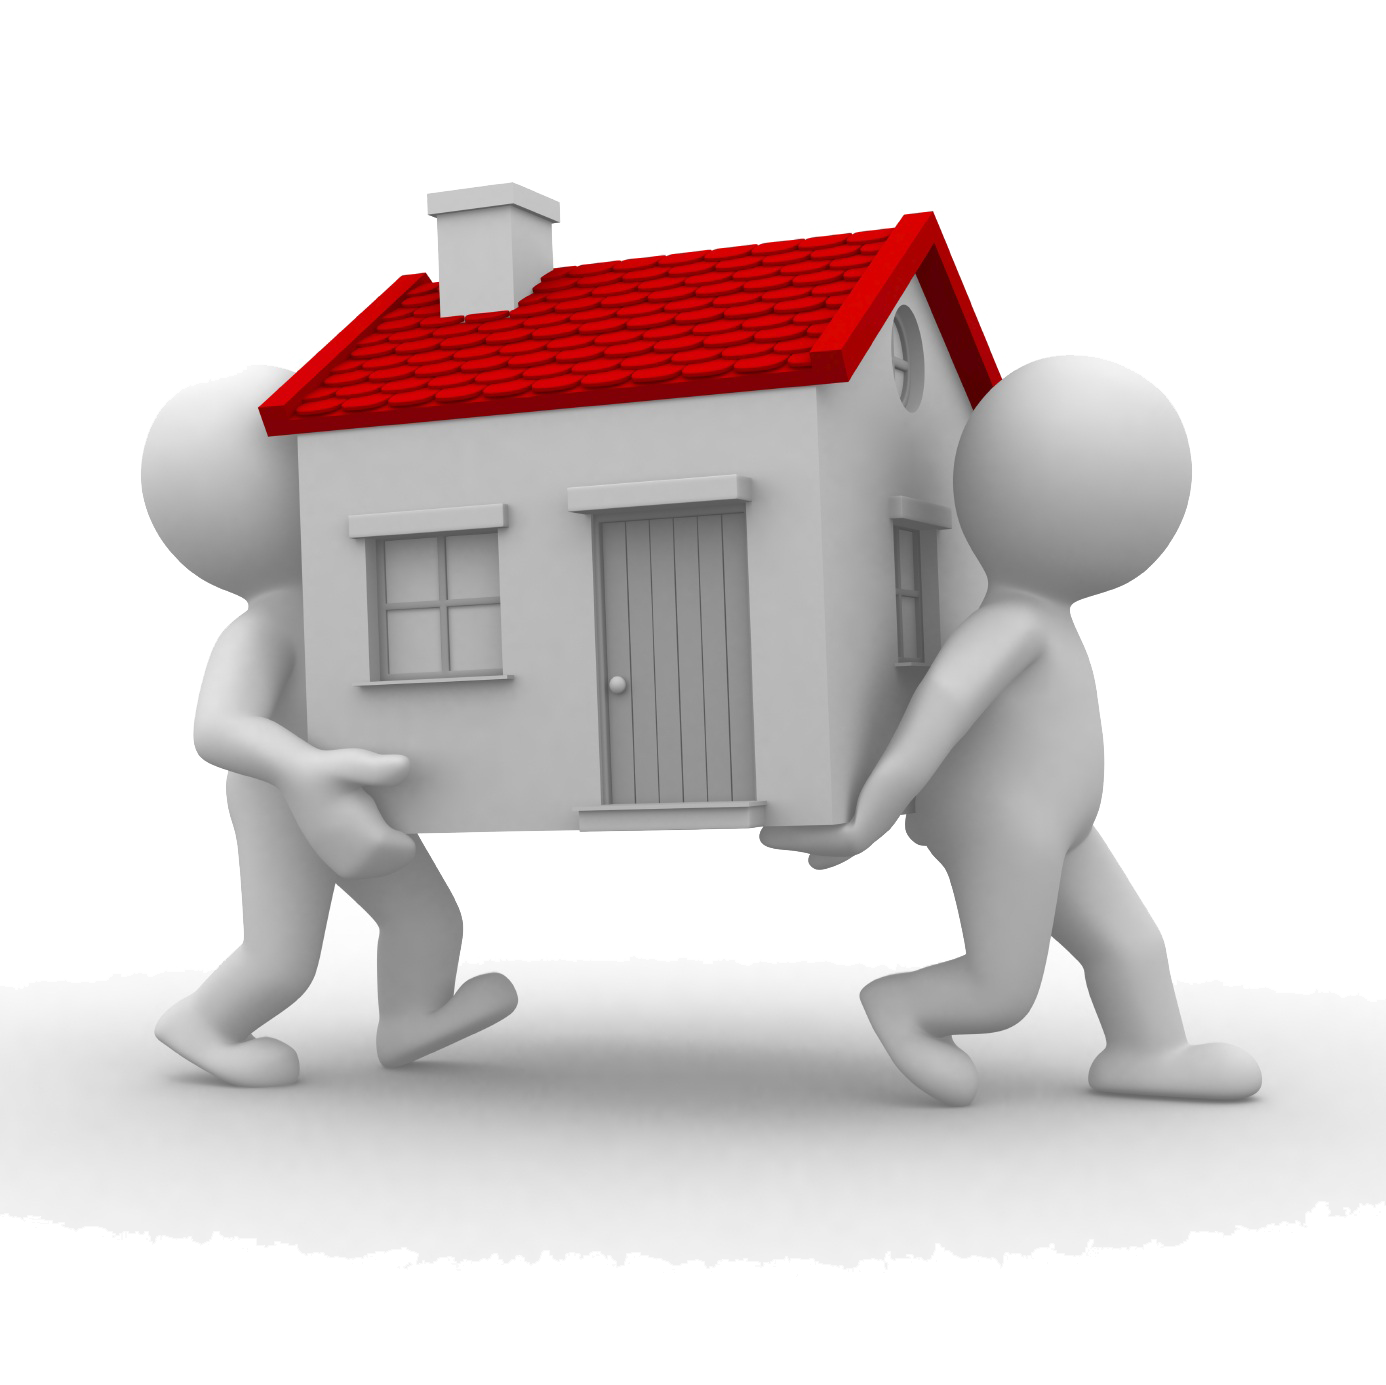 we are THE BEST PACKERS AND MOVERS IN WADI NAGPUR, we are the best packers and movers in nagpur.we are THE BEST PACKERS AND MOVERS IN NAGPUR,WADI.the best packers and movers in nagpur. packers and movers for wadi nagpur. best packers and movers services in nagpur